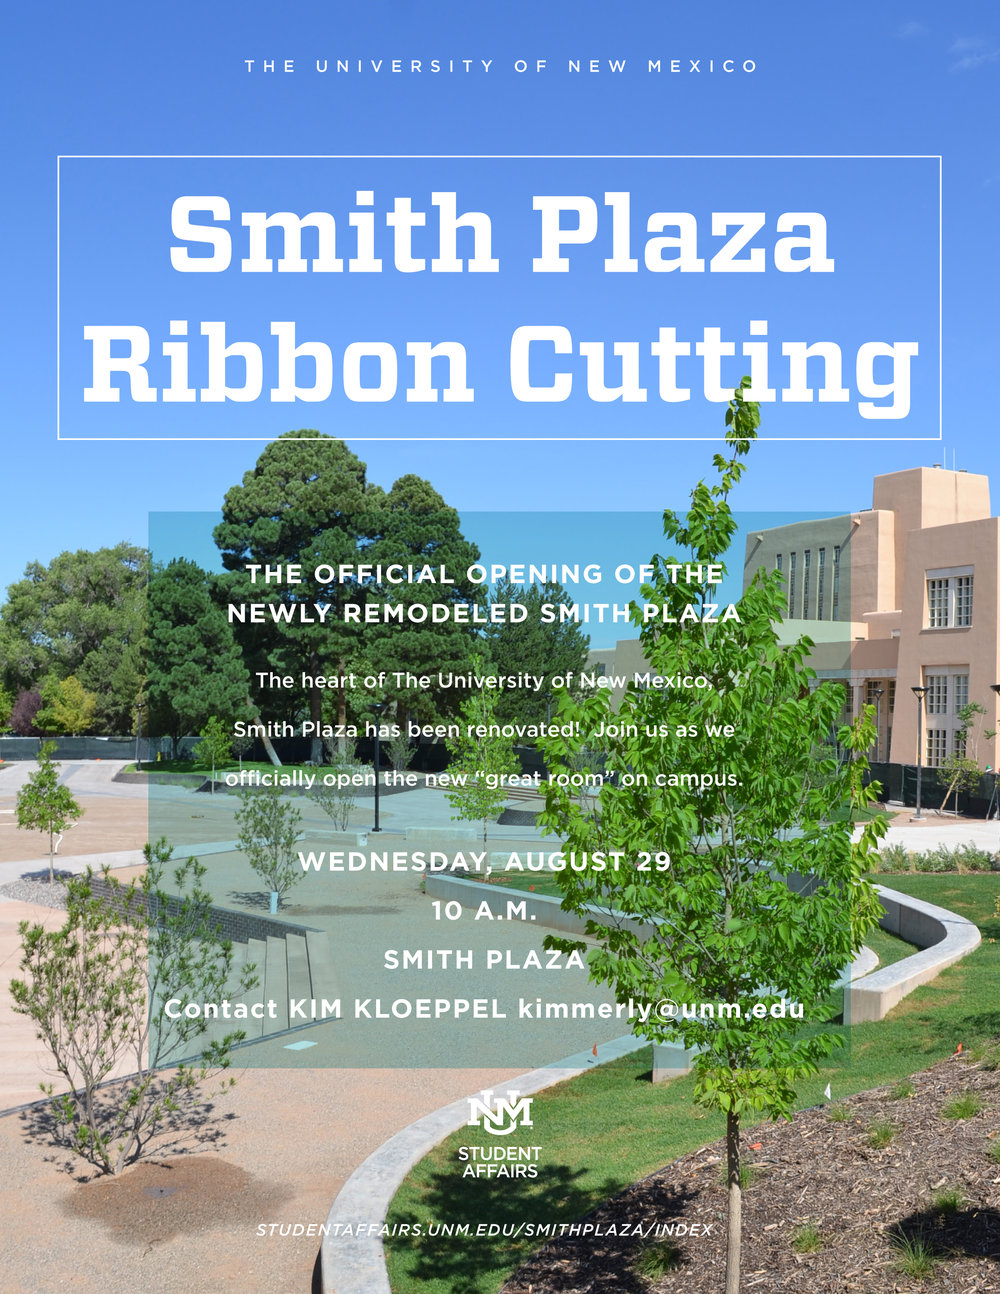 Final SP Ribbon cutting invite.jpg